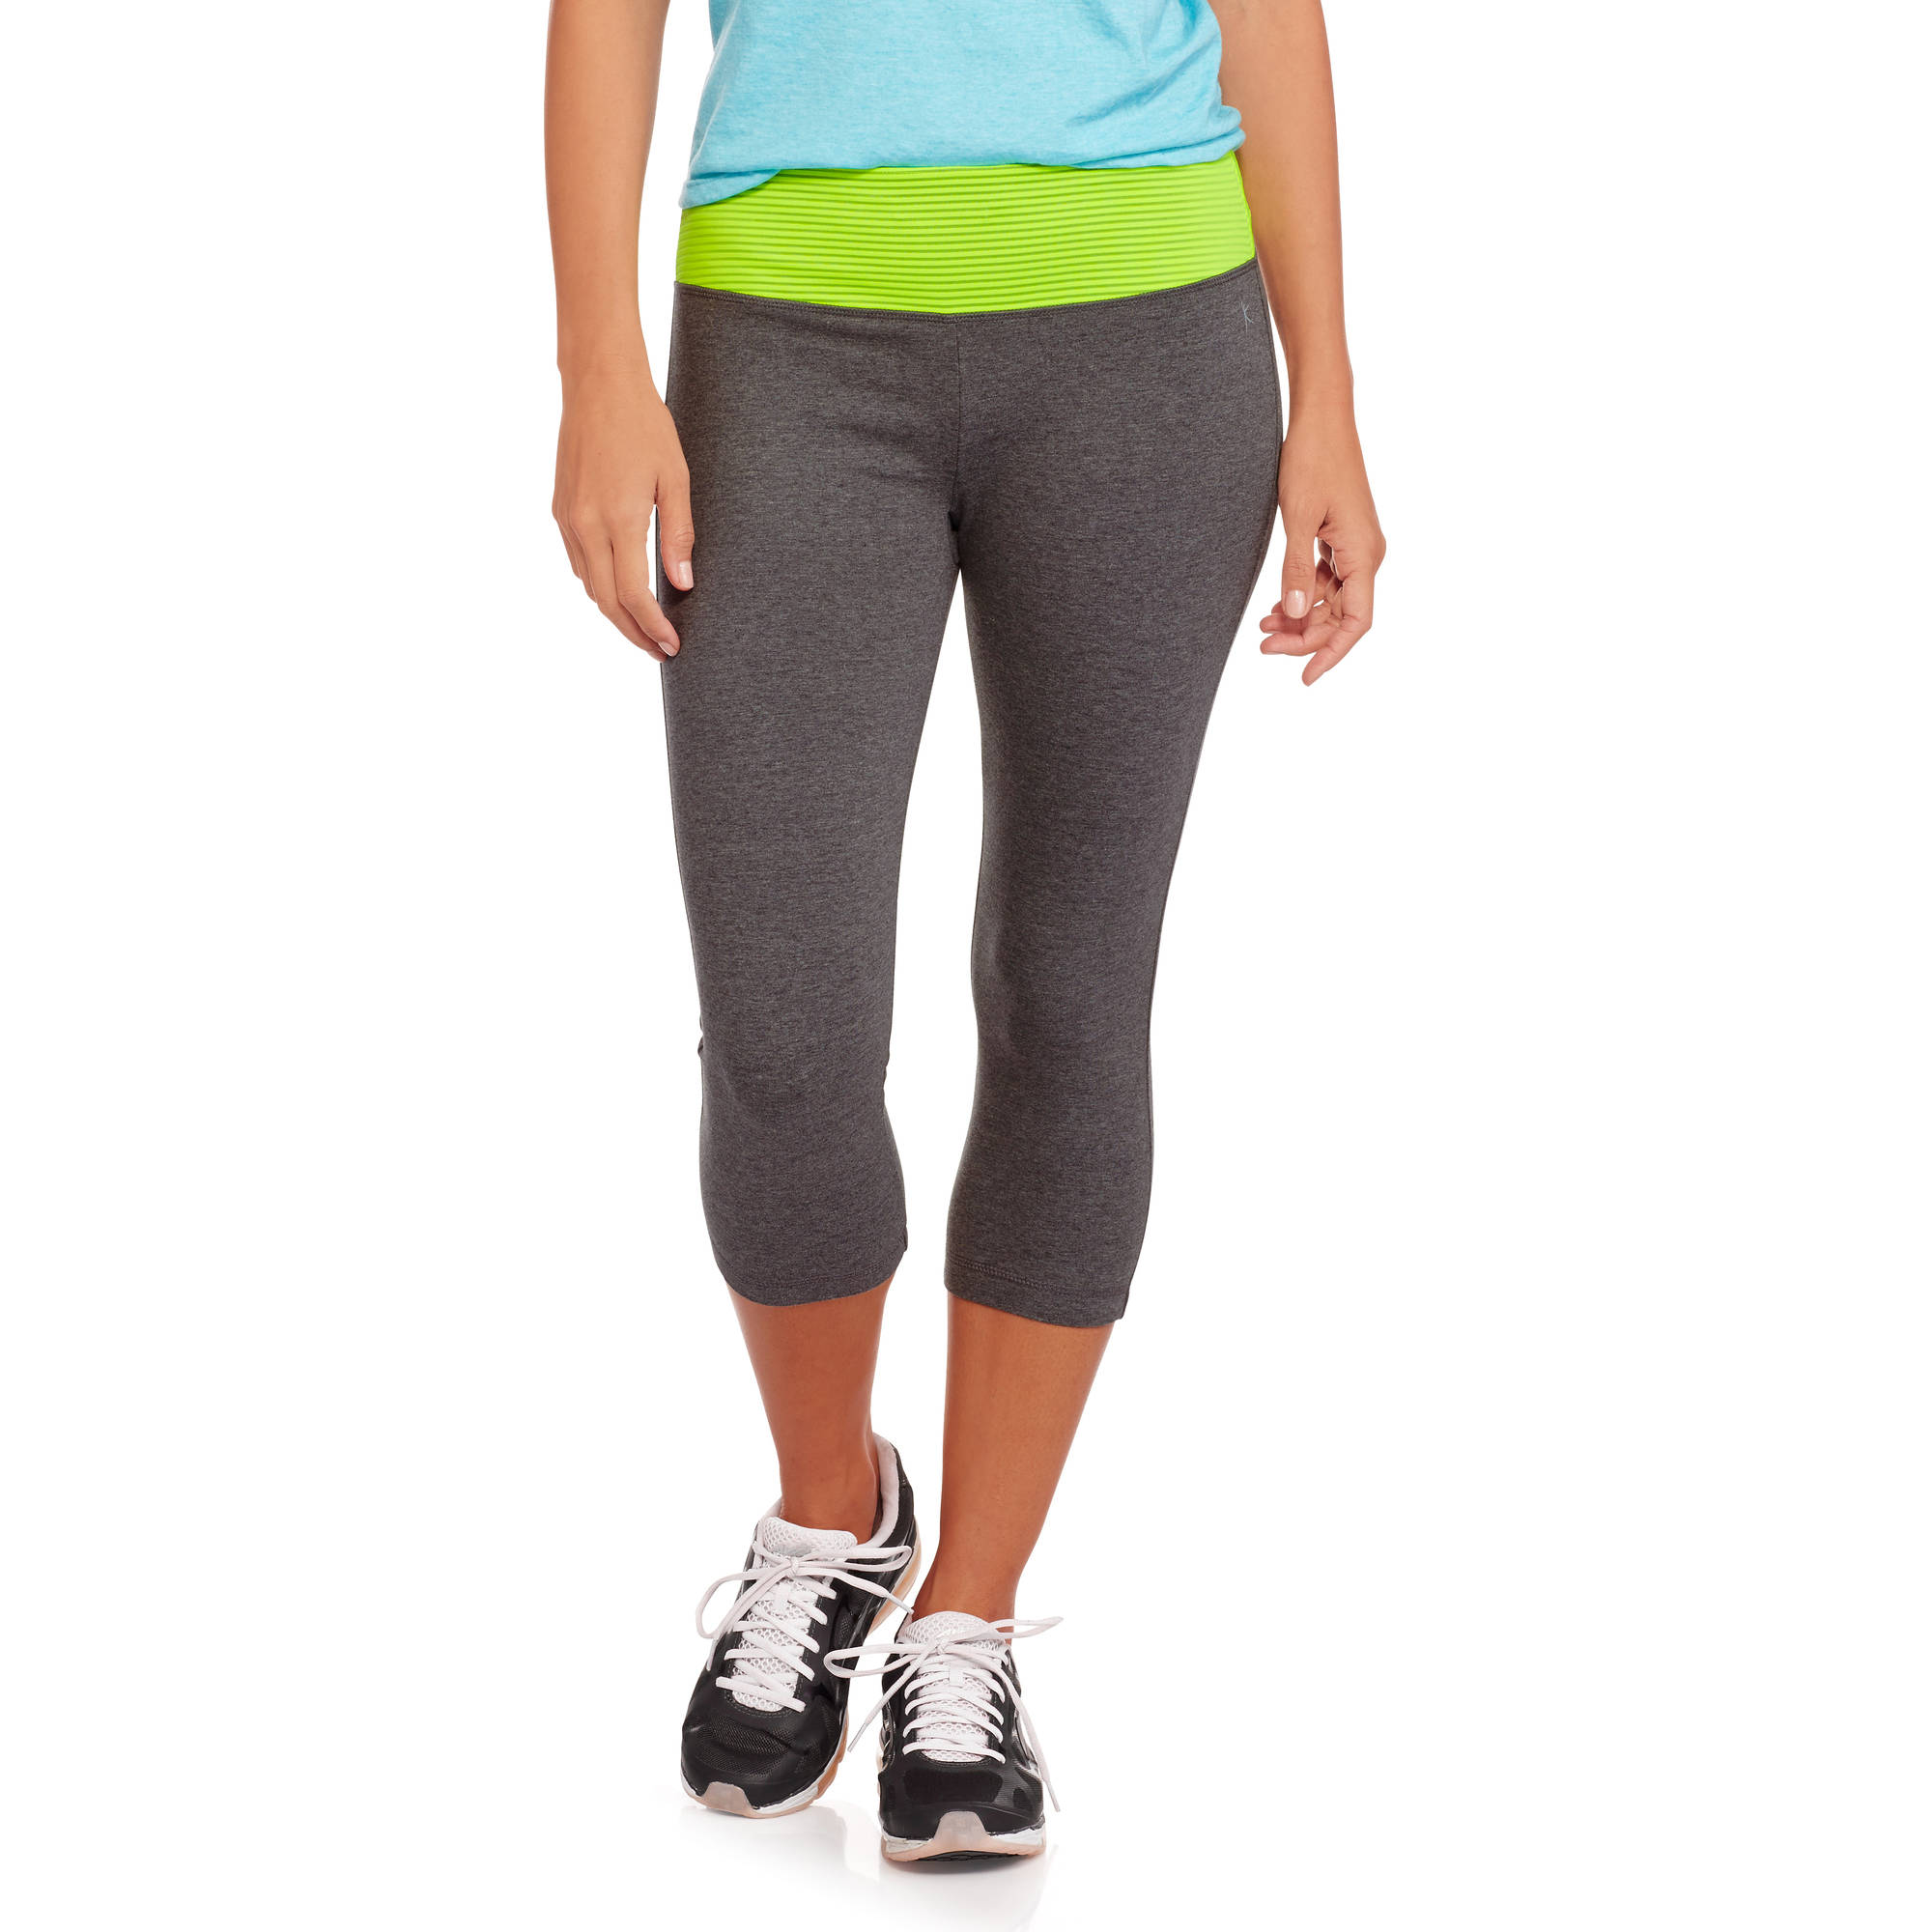 Danskin Now Women's Capri Tights with Textured Waistband